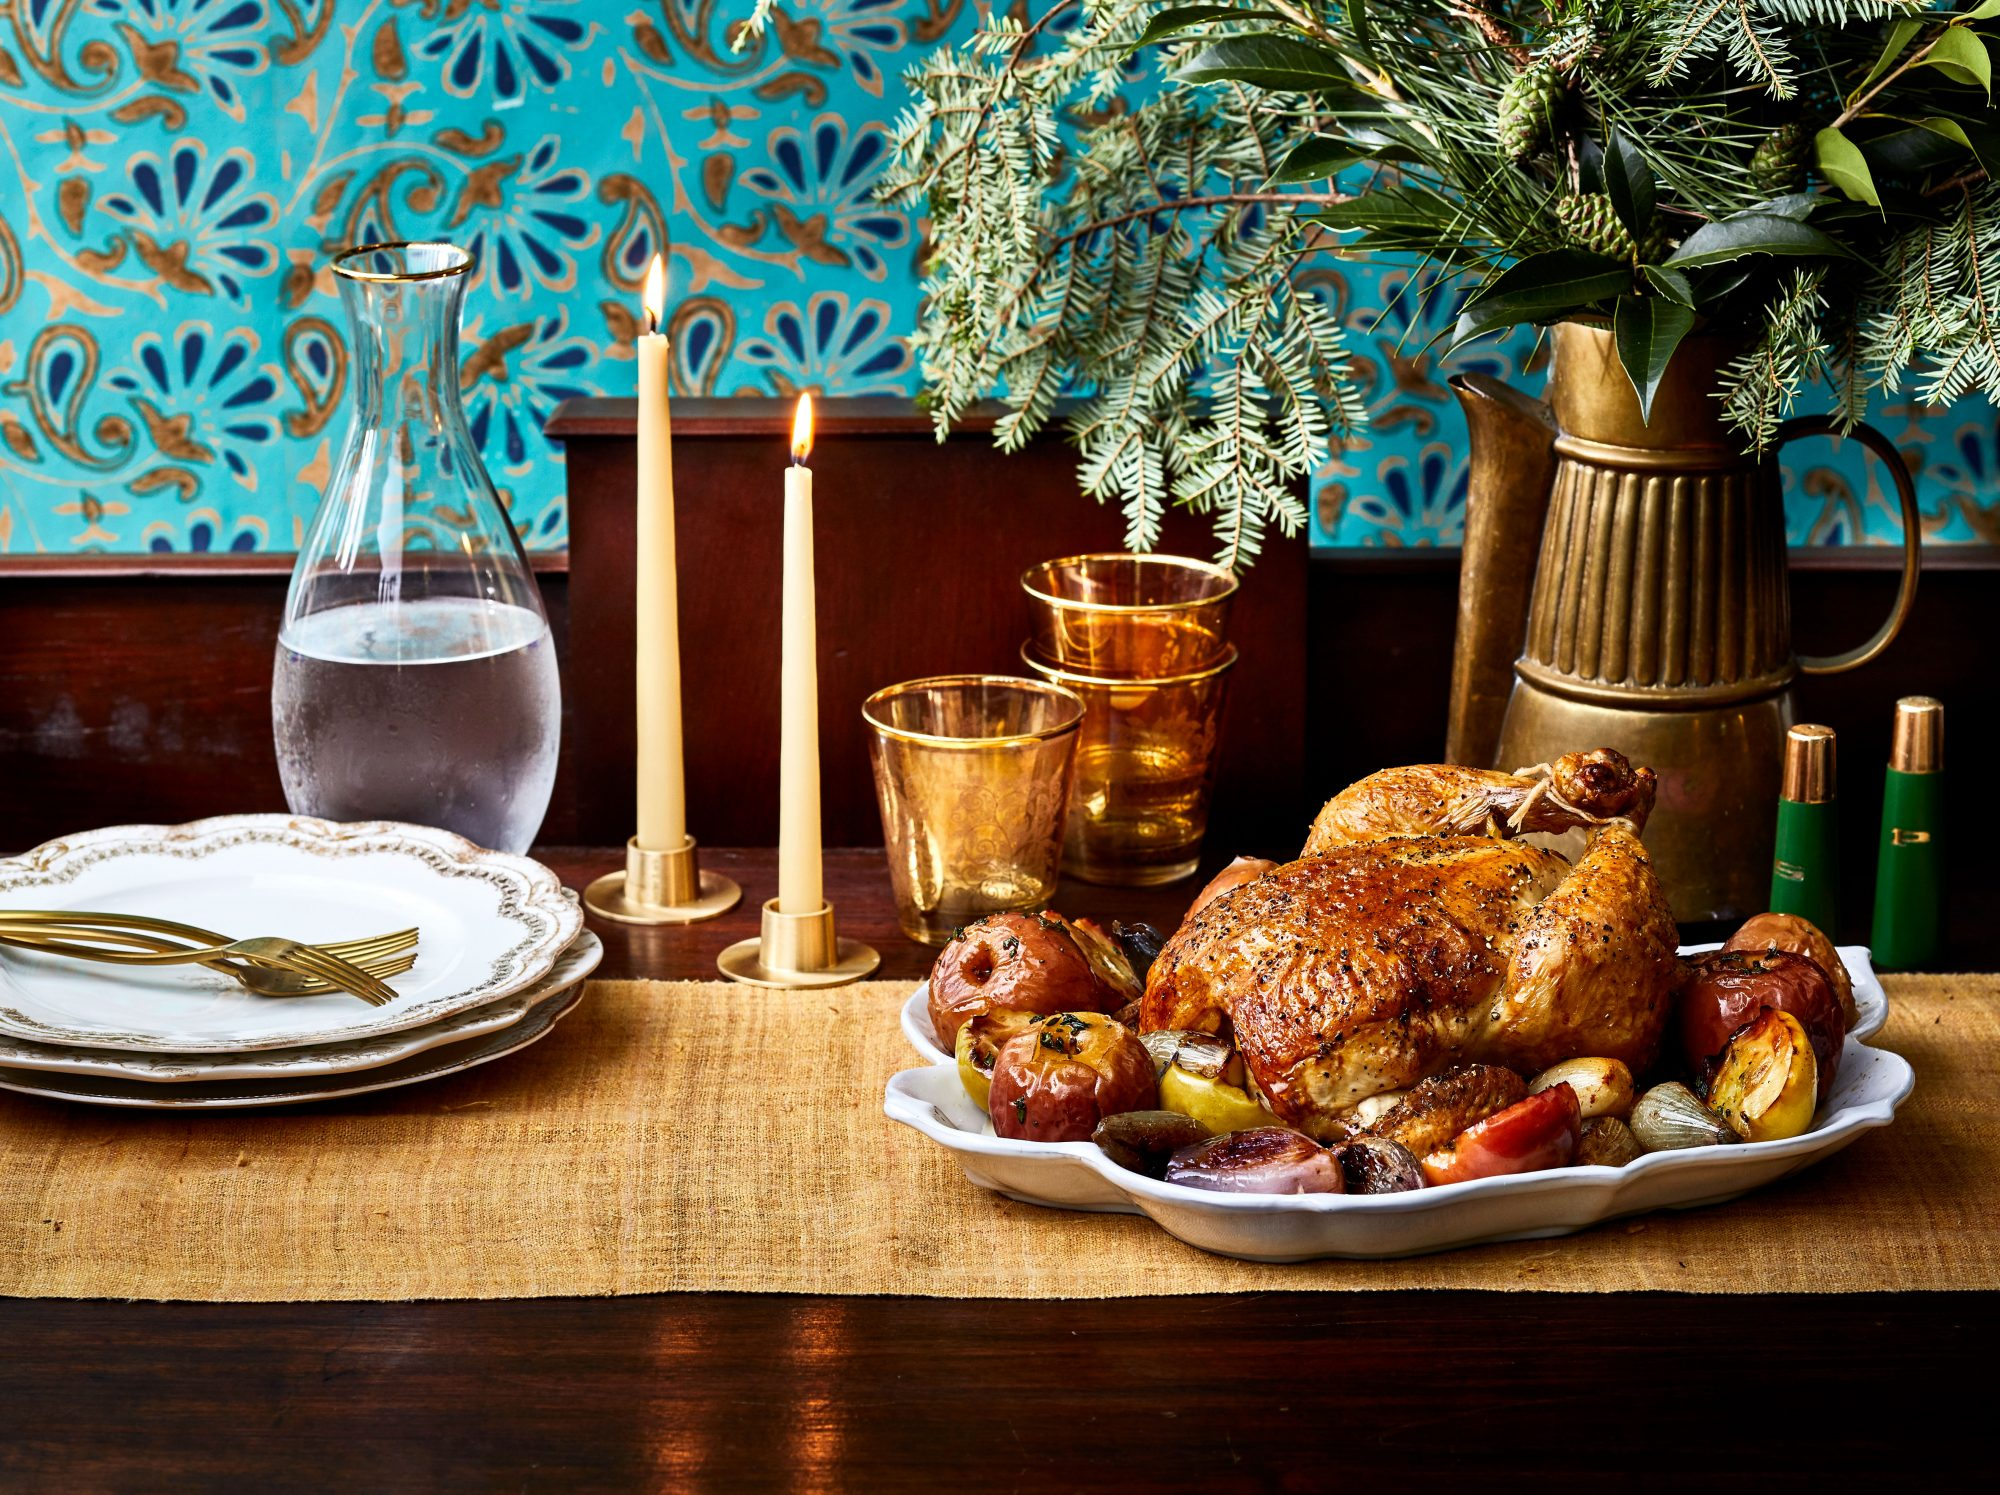 Roasted Chicken with Apples and Herbs